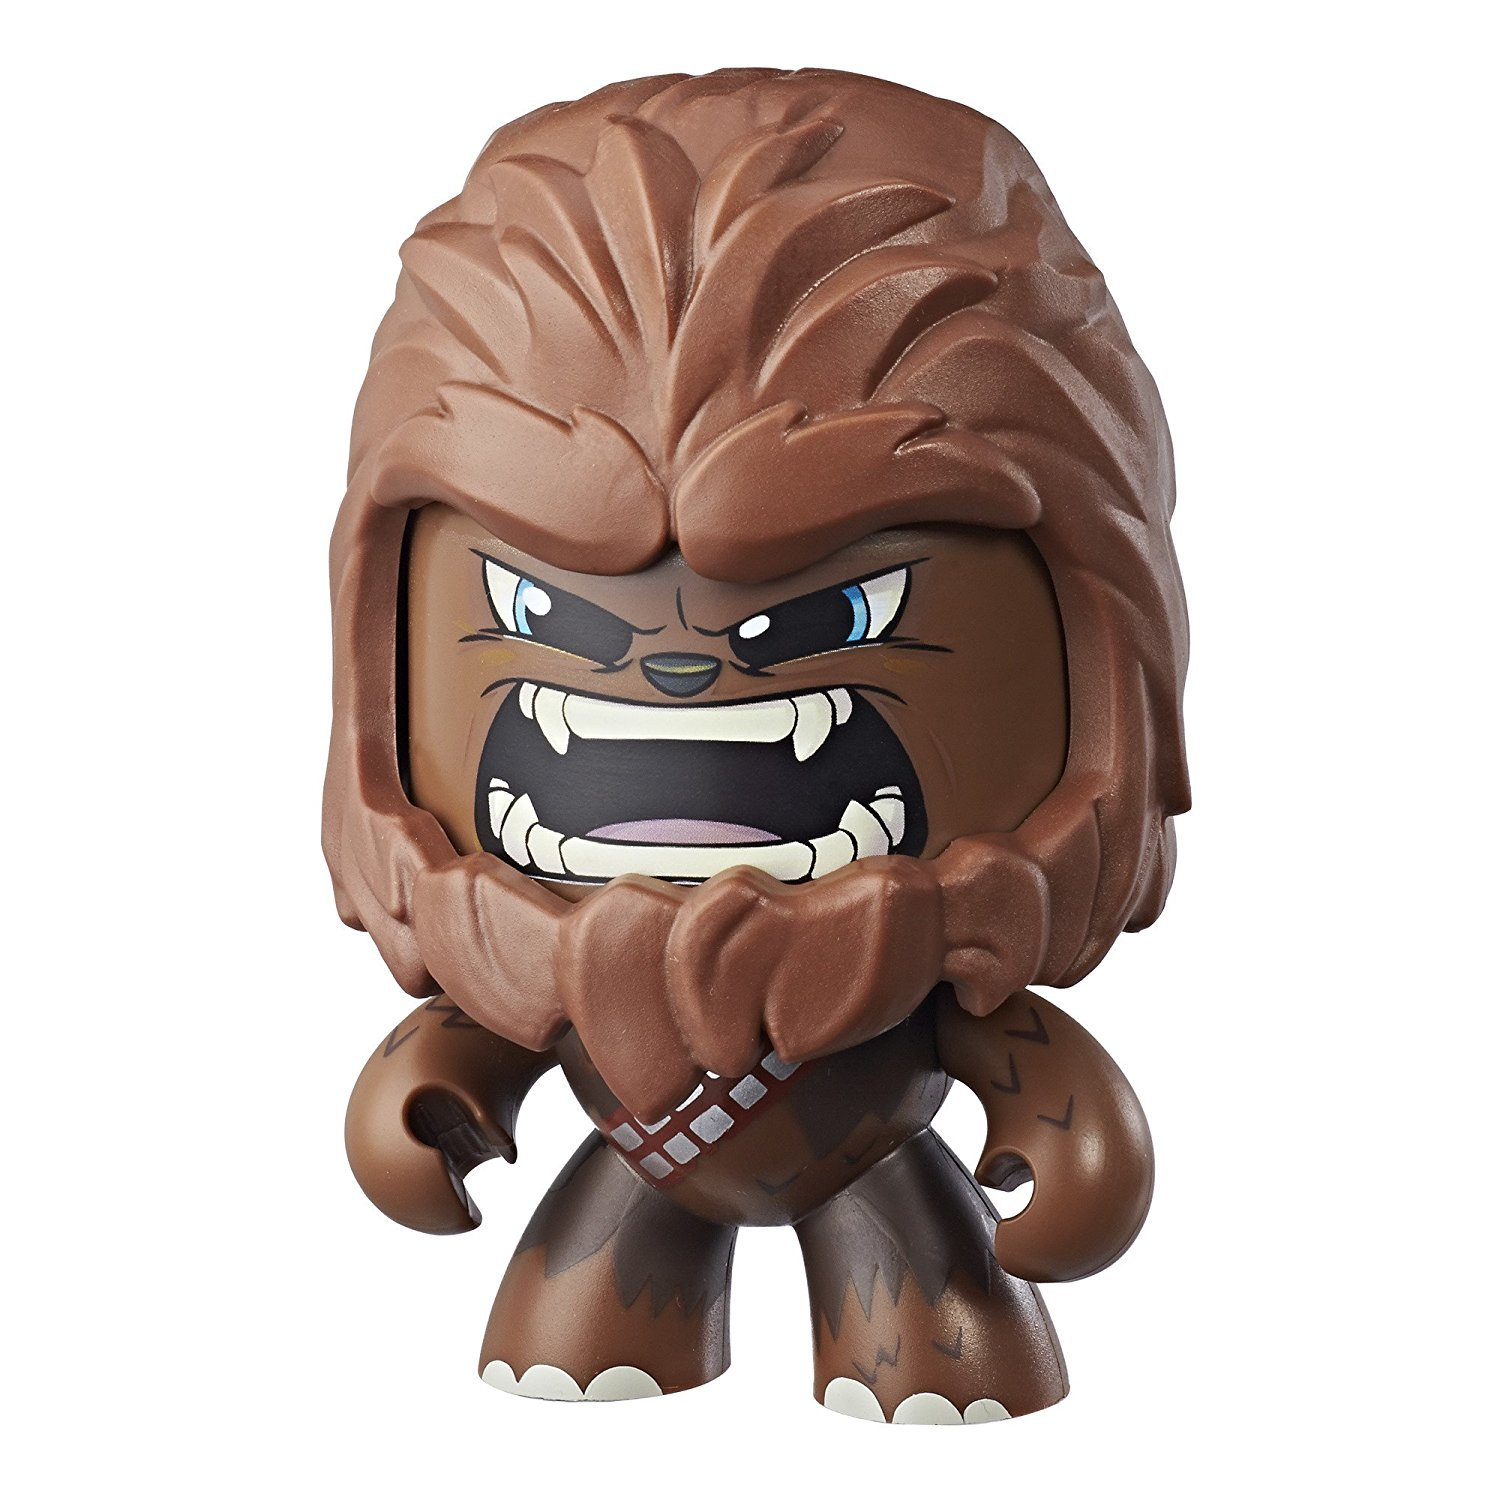 Star Wars: Mighty Muggs Figure - Chewbacca image